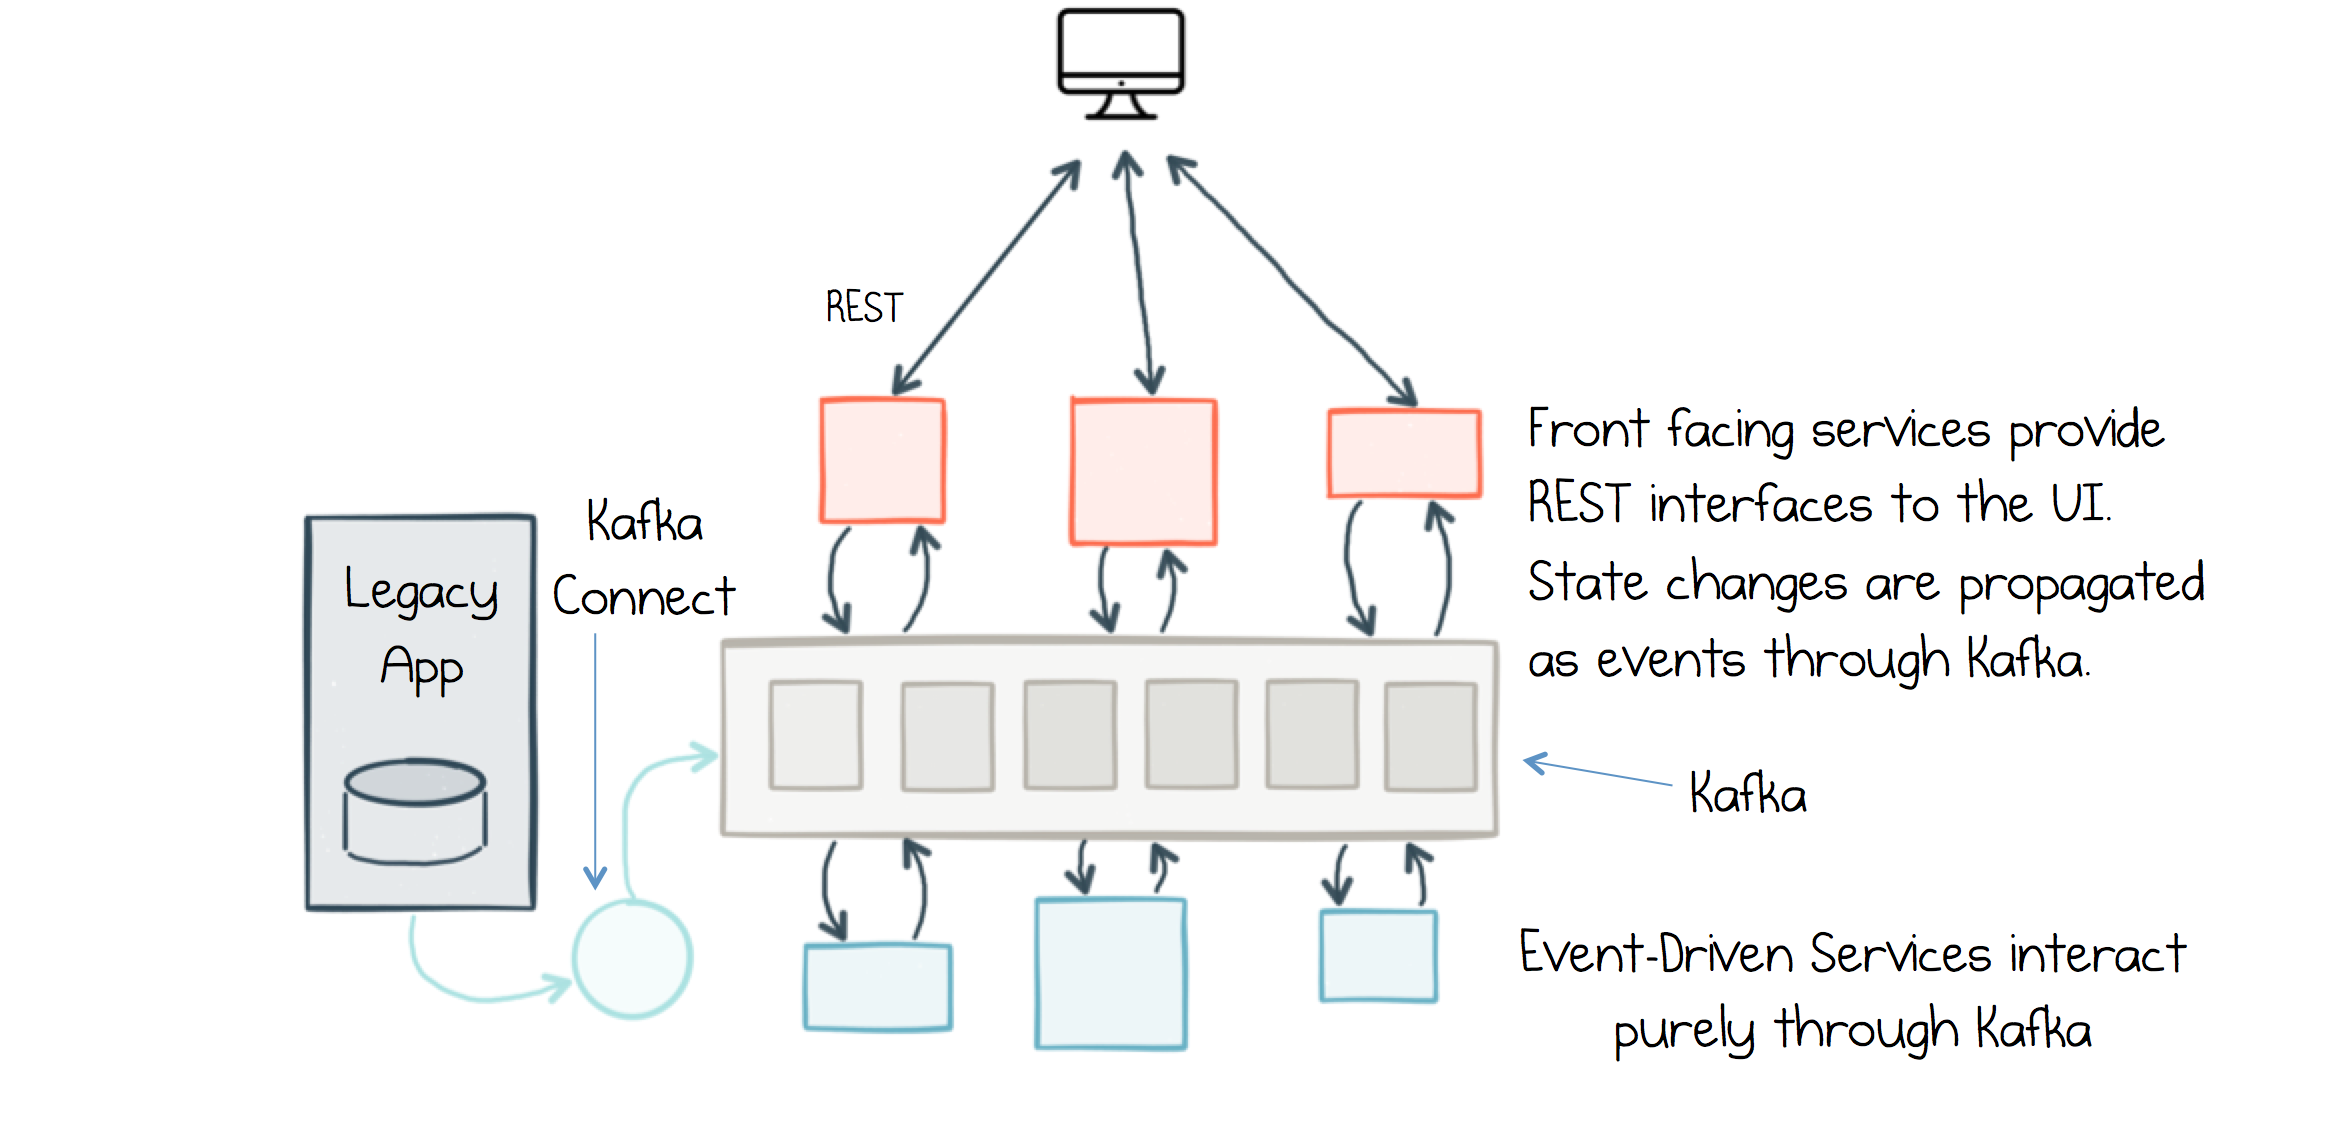 Using Apache Kafka as a Scalable, Event-Driven Backbone for Service Architectures